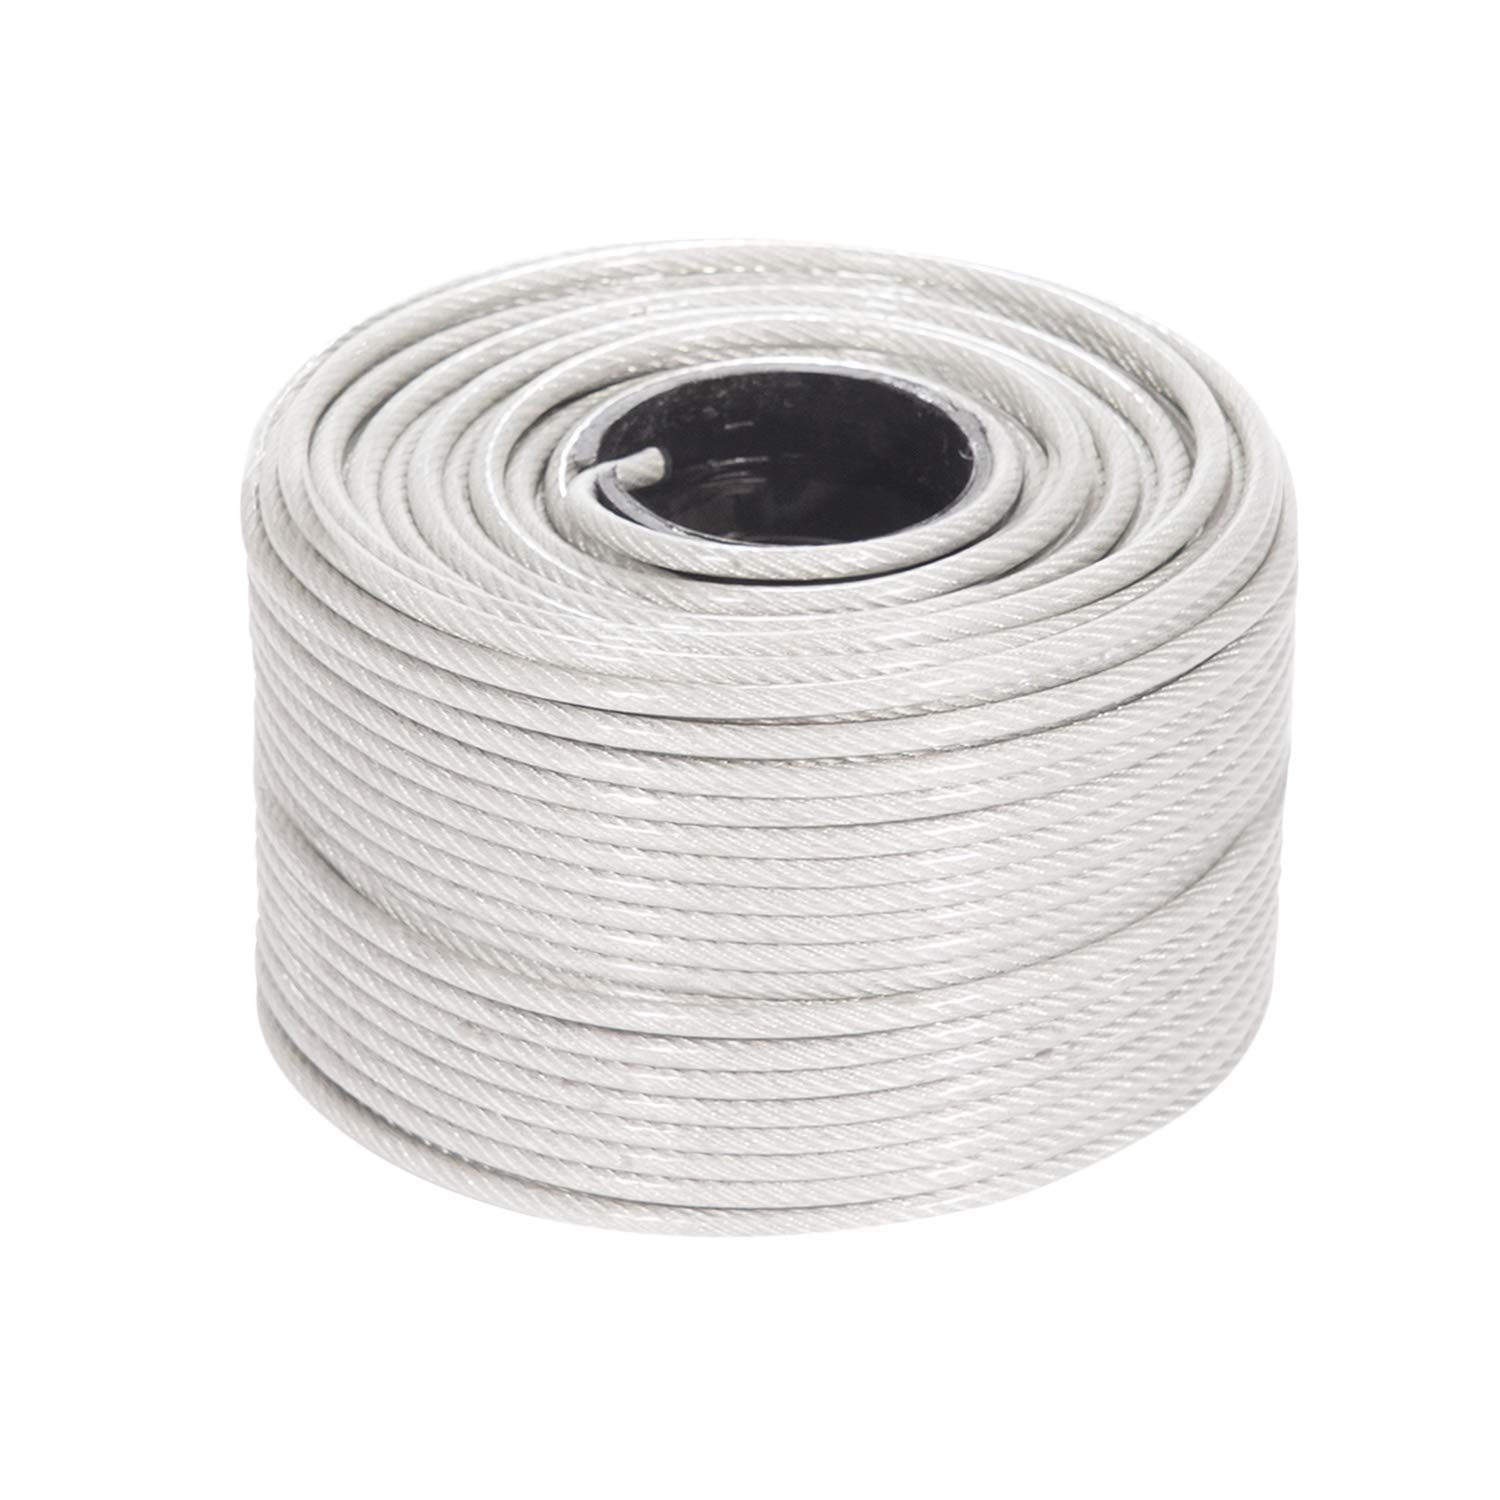 Tension Wires Zip Lines Plastic Reel for Clothes Line 7x19 Braided Strands Galvanized Metal Houseables Vinyl Coated Wire Rope 250 Feet 3//16-Inch 1//8-Inch Renewed Stainless Steel Aircraft Cable